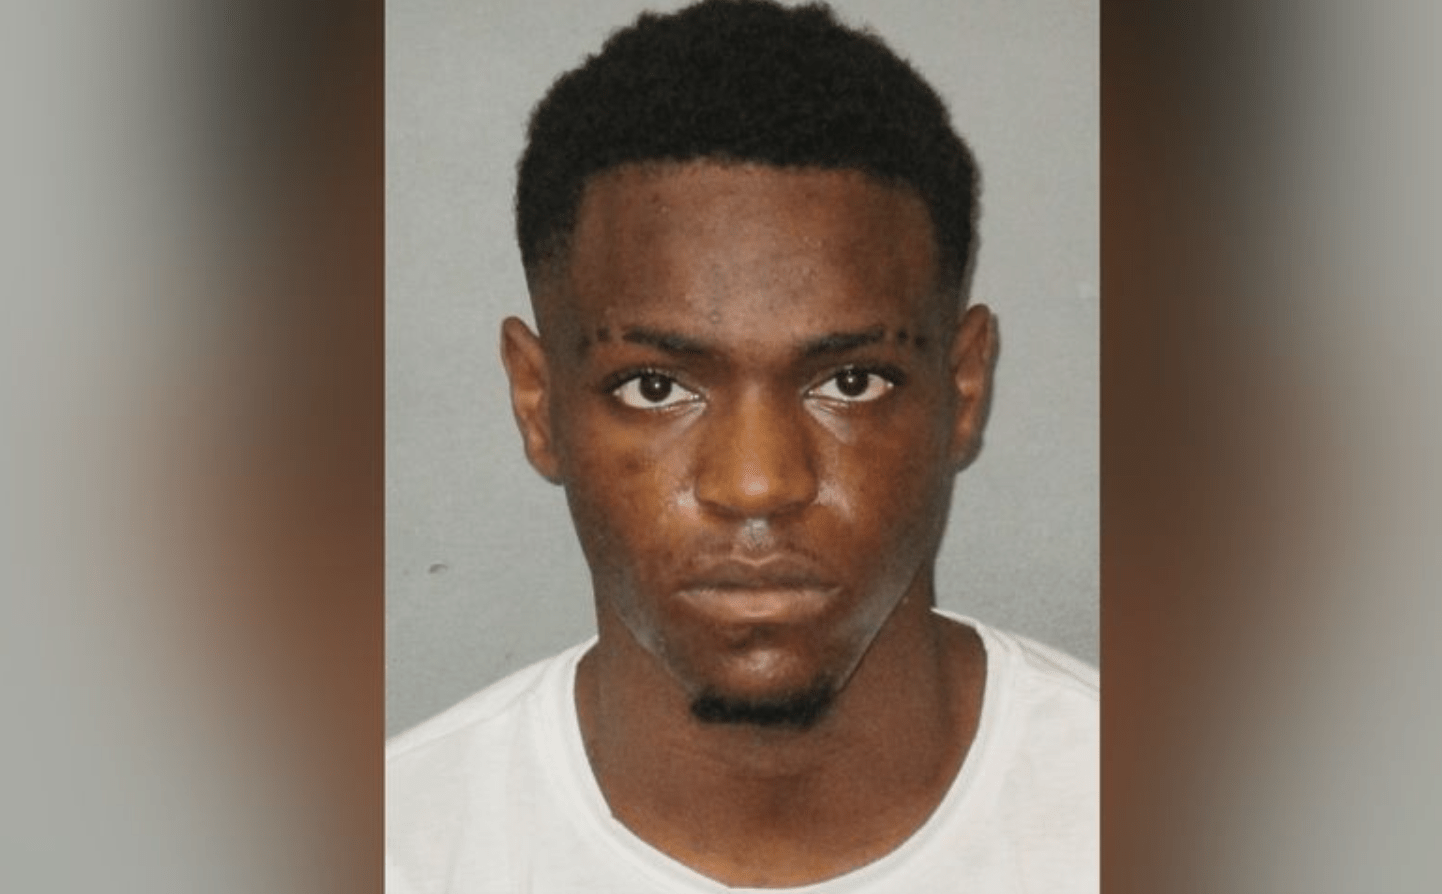 Suspect in murder of teen was out on bond for another shooting arrest at the time of the killing